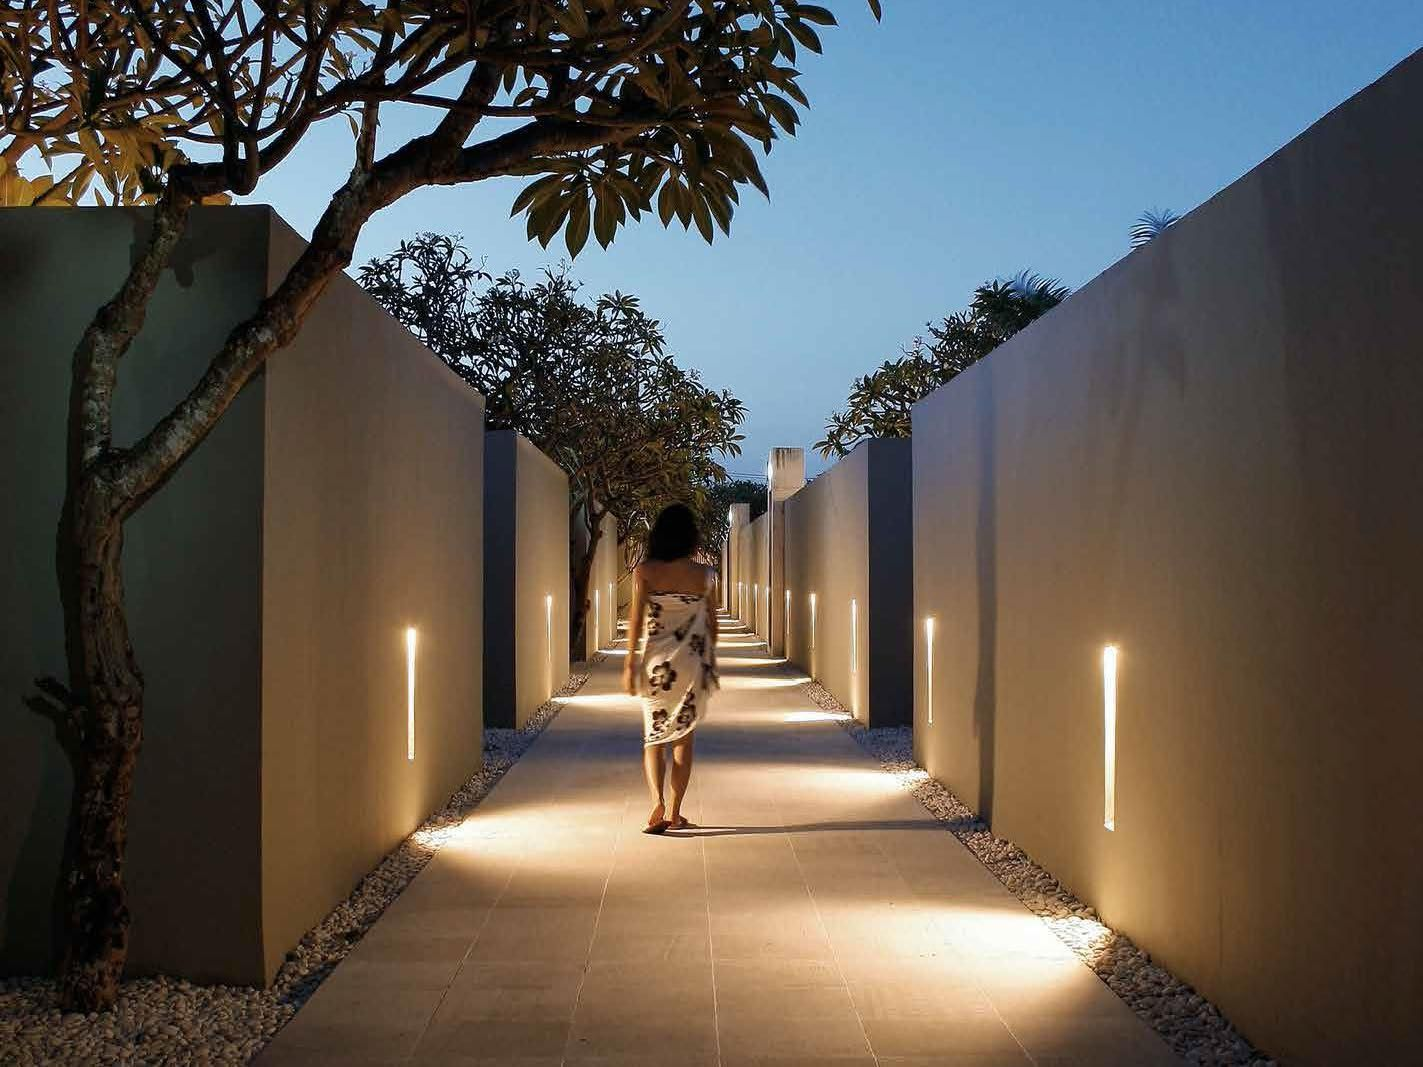 Beautiful Landscape Architecture At Night Outdoor